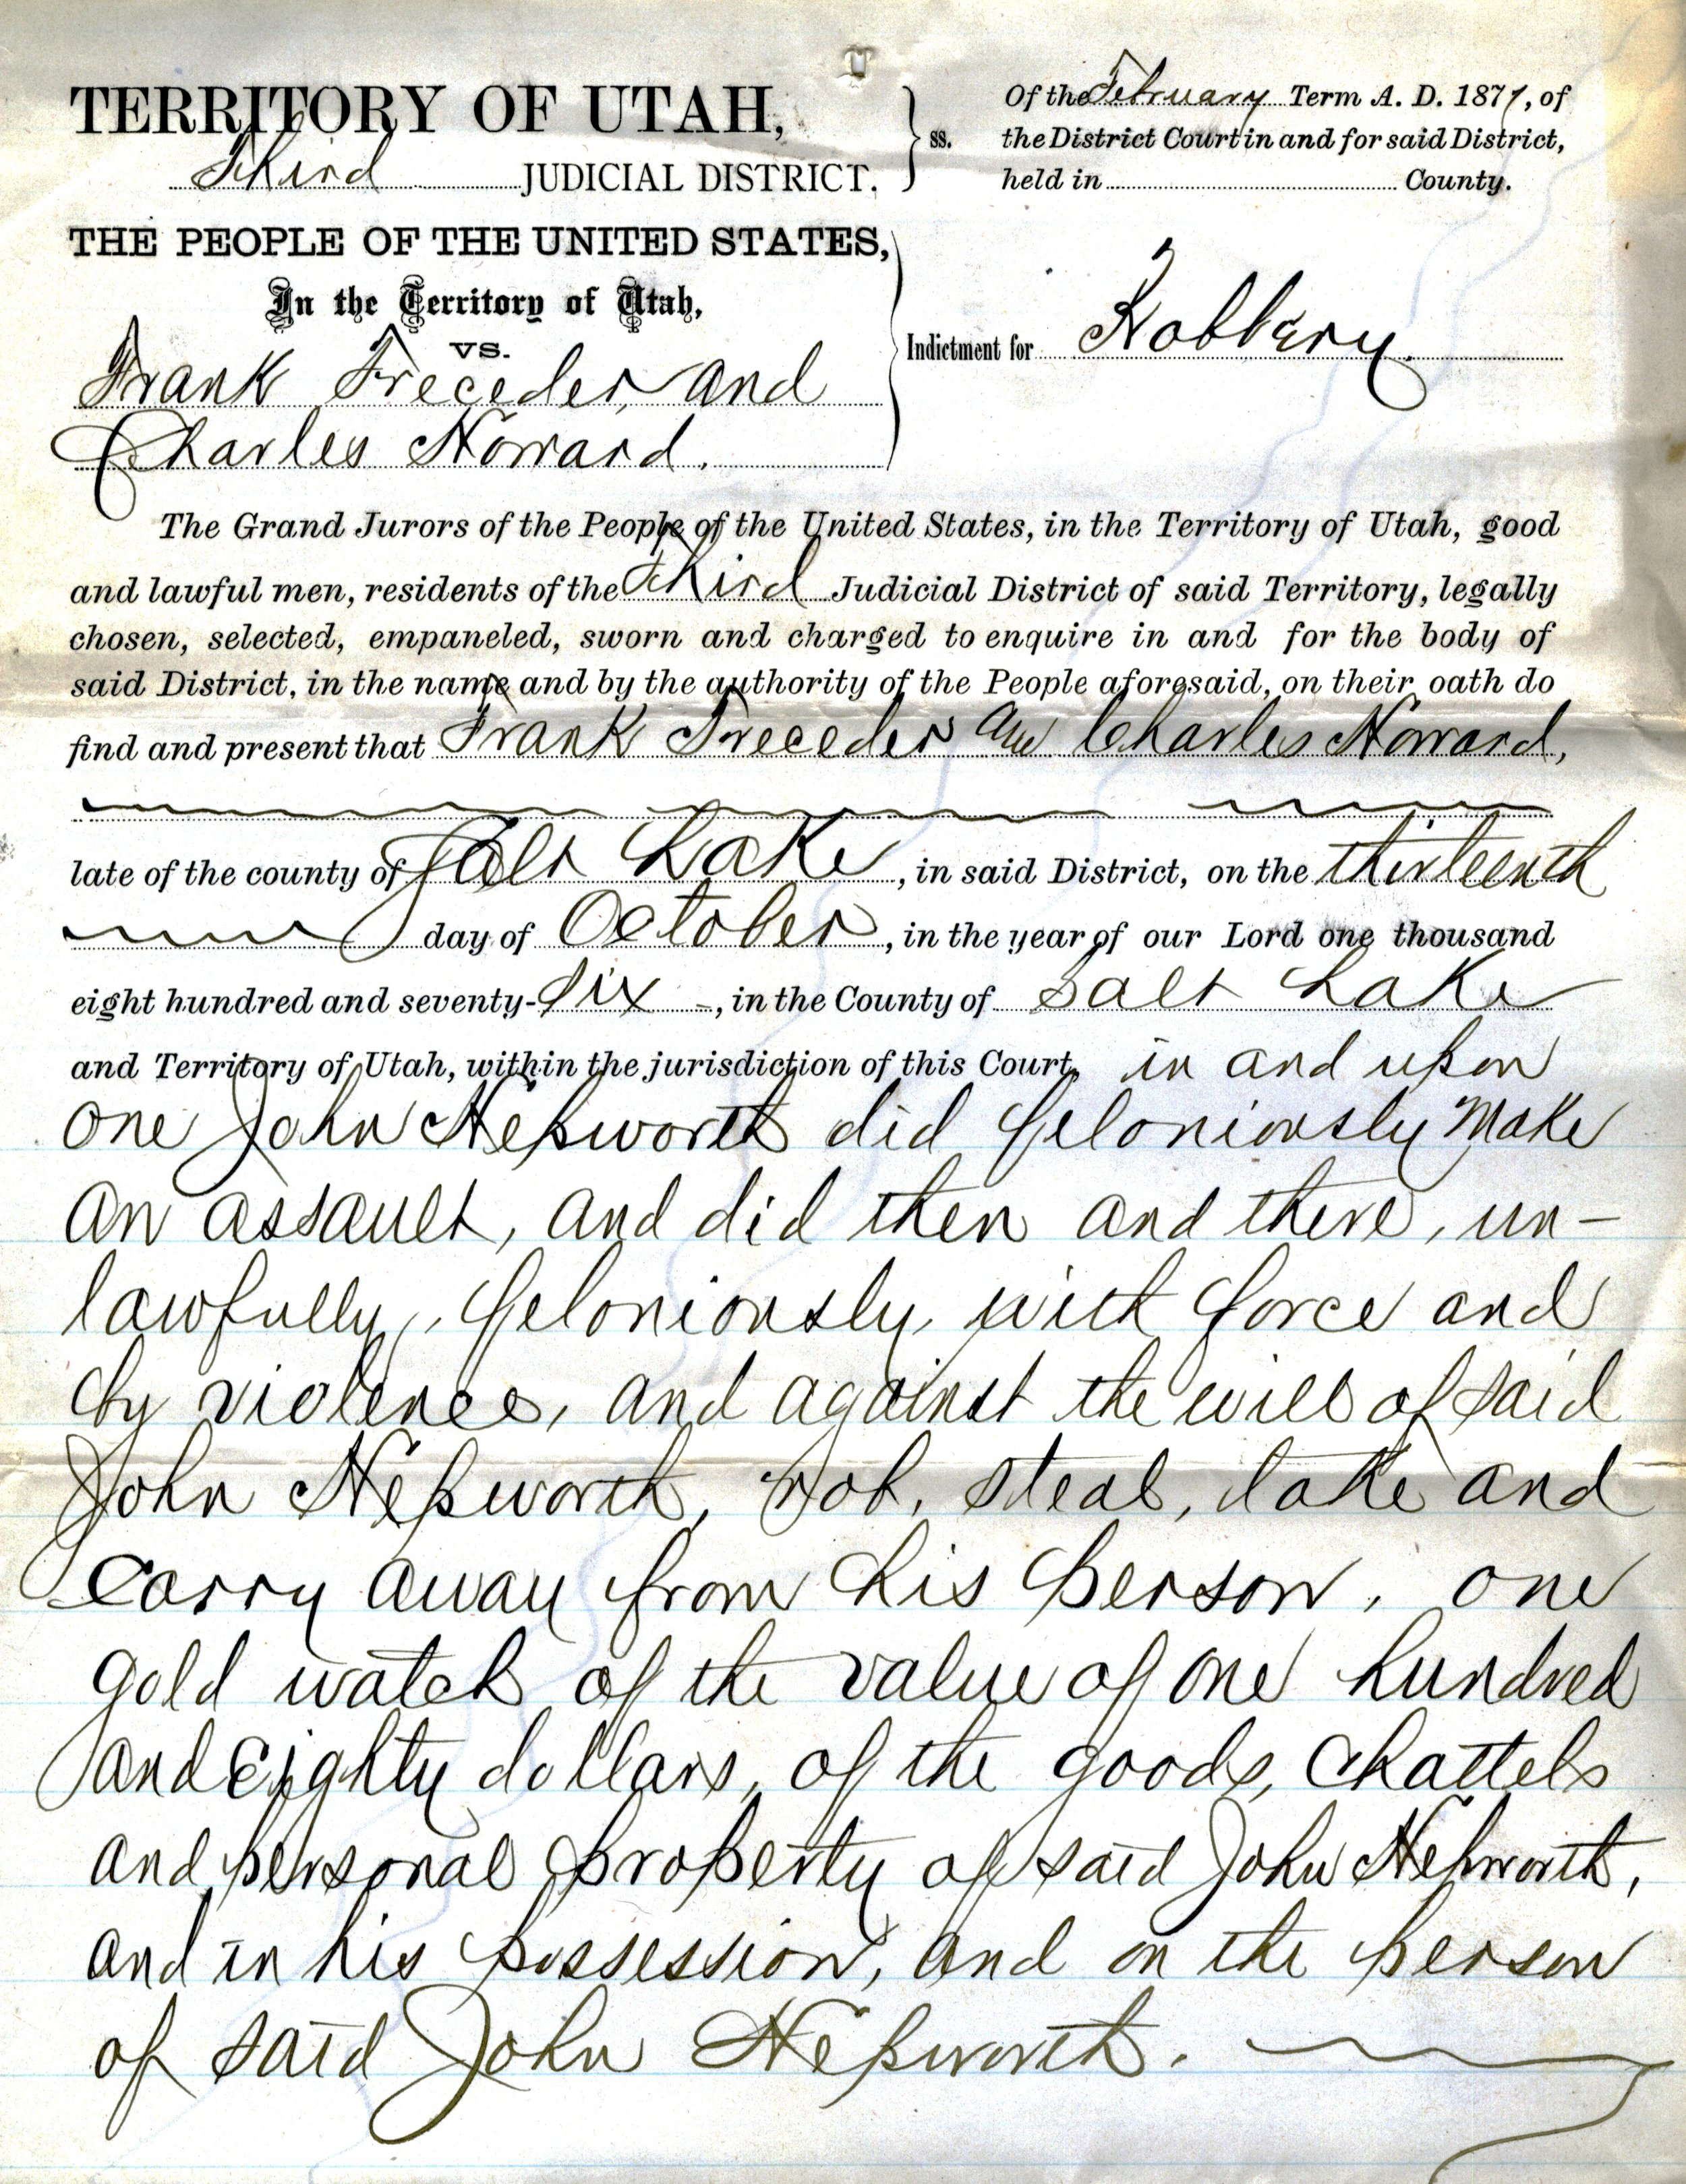 1877 CHARGING DOCUMENT AGAINST FRANK TRESEDER AND CHARLES HOWARD (SERIES 9802). IMAGE COURTESY OF THE UTAH STATE ARCHIVES AND RECORDS SERVICE.